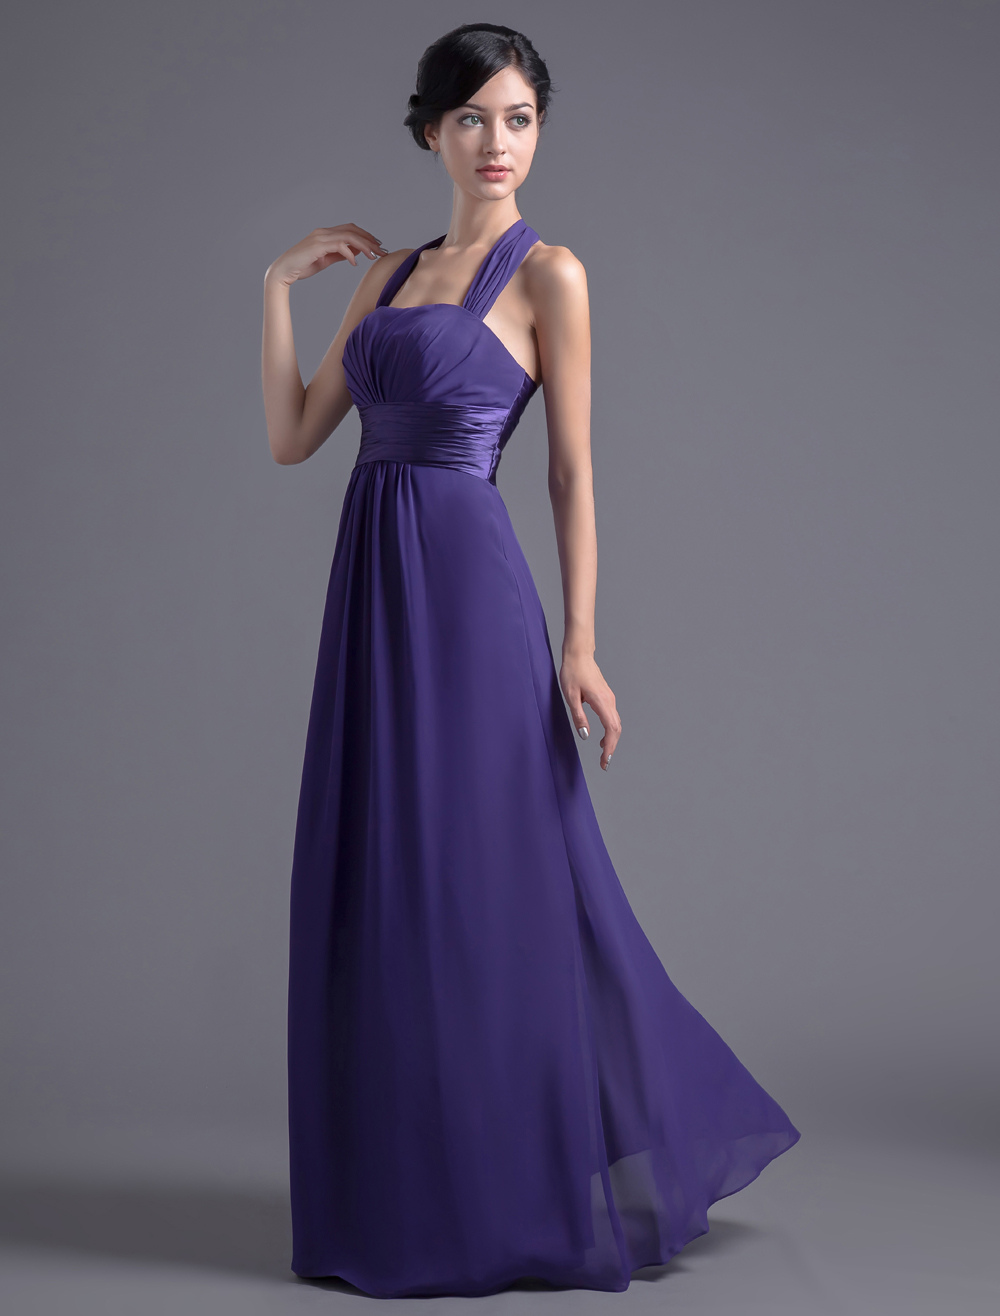 Halter Bridesmaid Dress Royal Purple Prom Dress Empire Waist Chiffon Maxi Party Dress